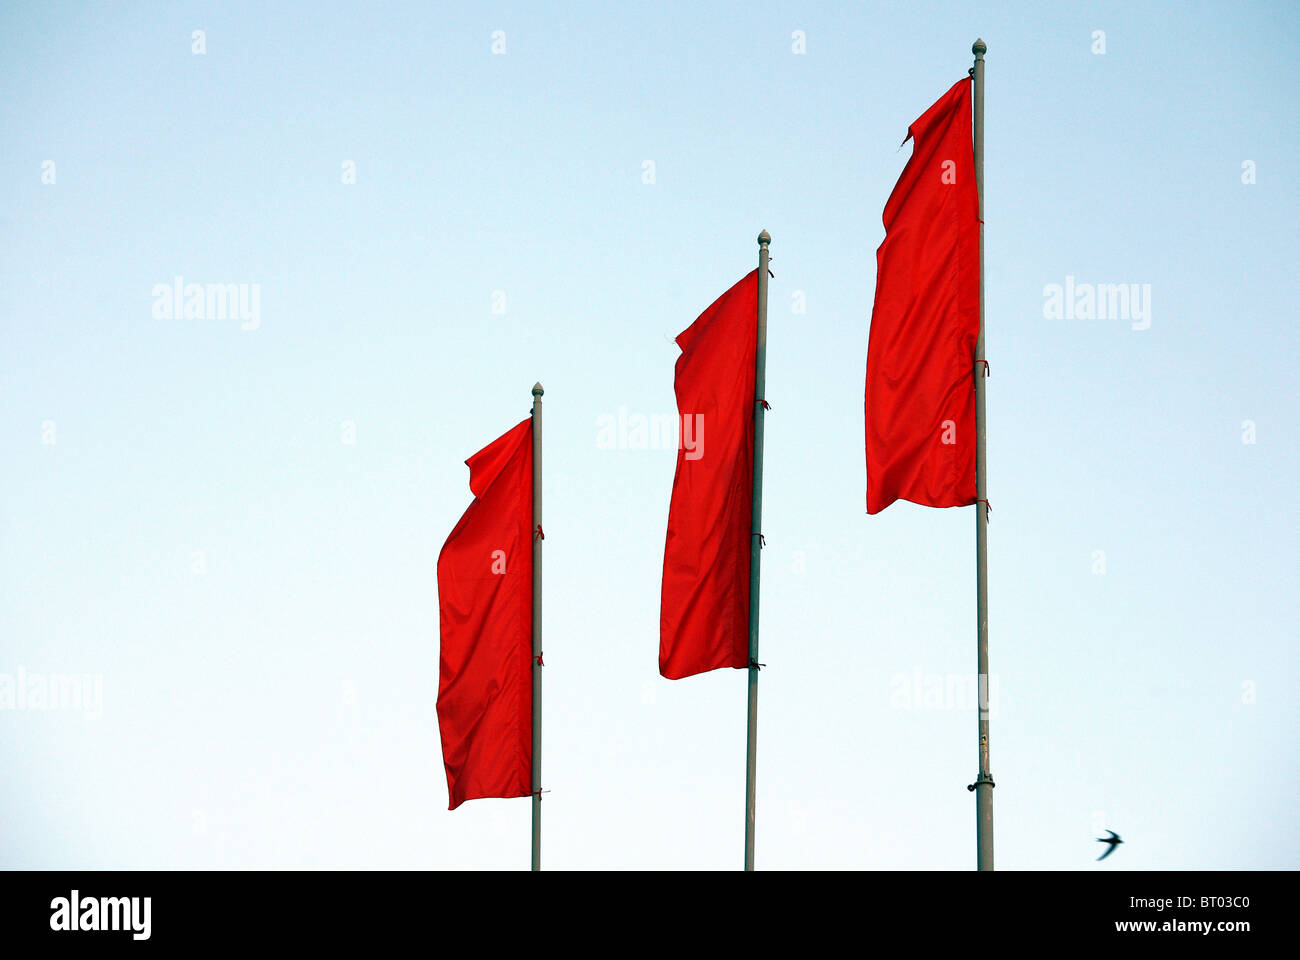 Three red flags, Brest, Belarus - Stock Image